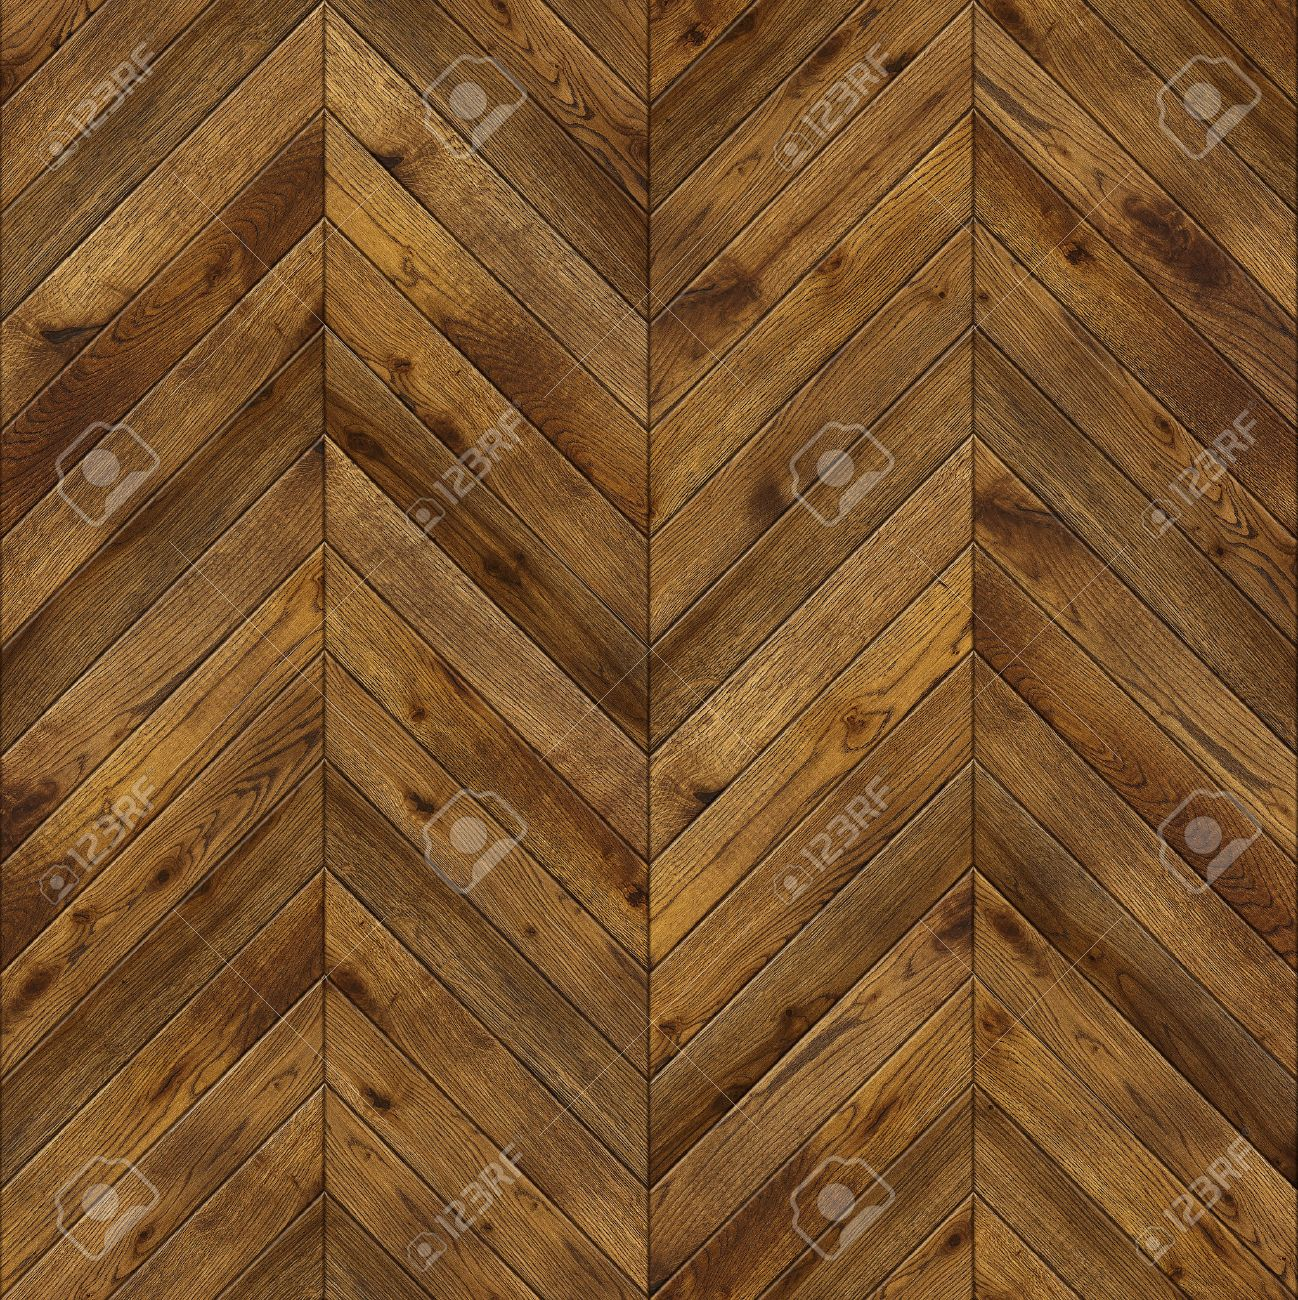 Parquet En Bois Best Parquet En Chne Plinthes Assorties With